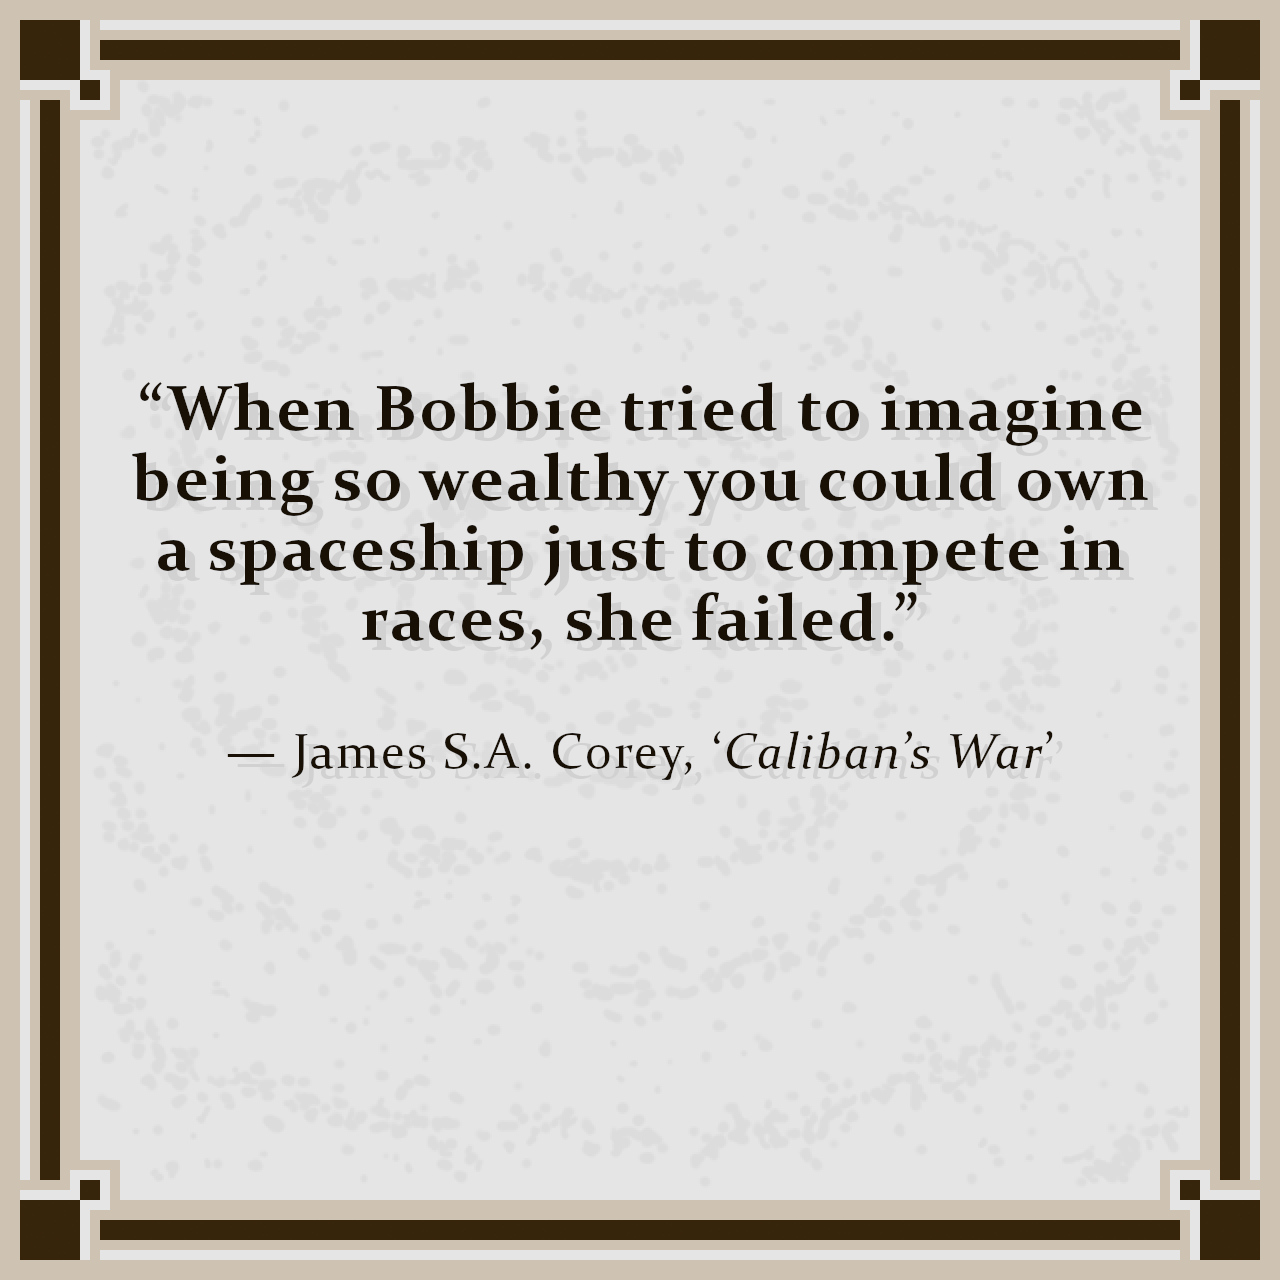 """""""When Bobbie tried to imagine being so wealthy you could own a spaceship just to compete in races, she failed."""" — James S.A. Corey, 'Caliban's War'"""